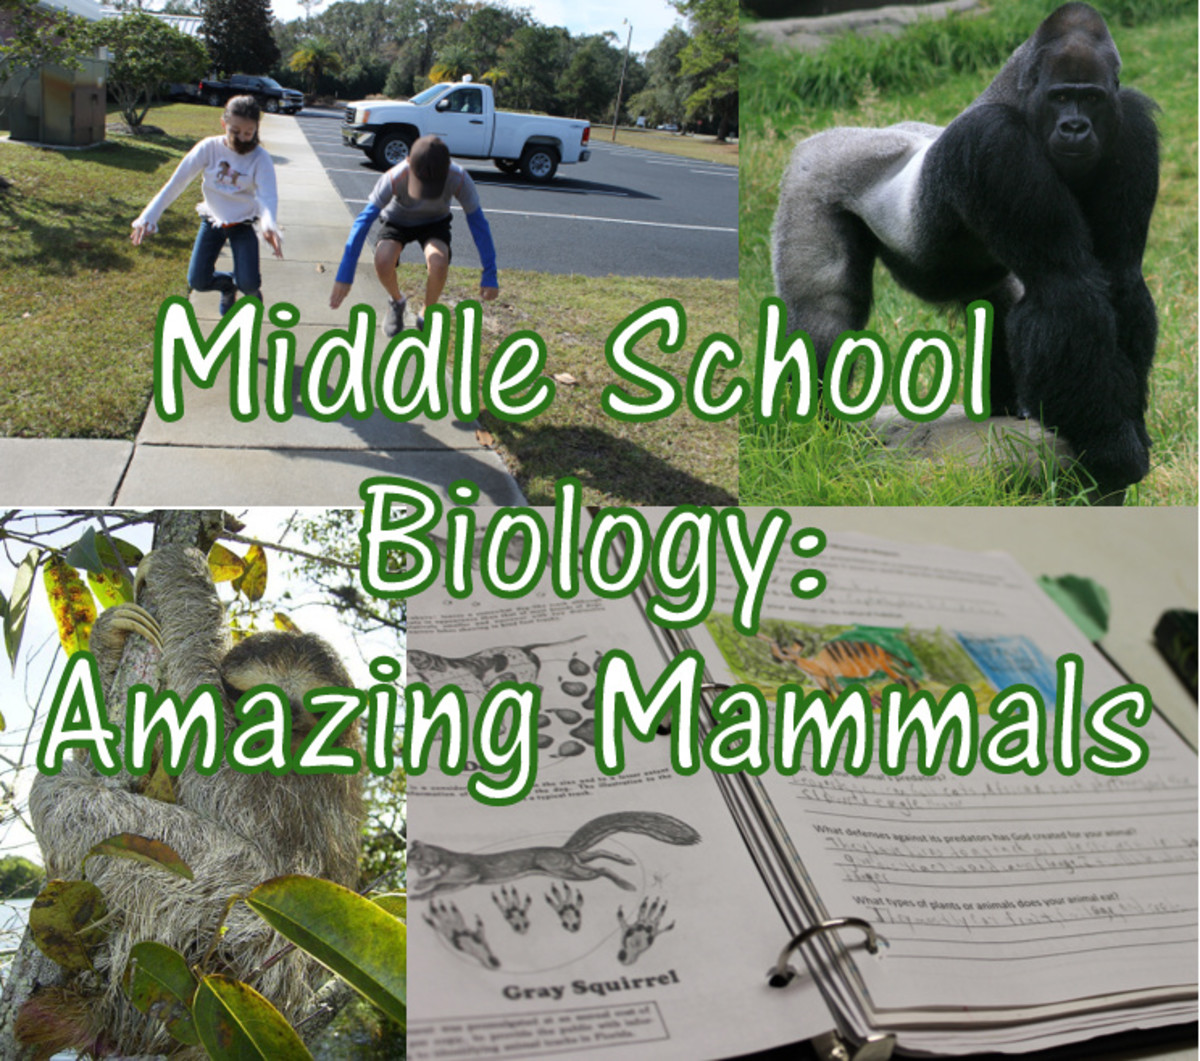 Amazing Mammals: A Christian Middle School Biology Lesson